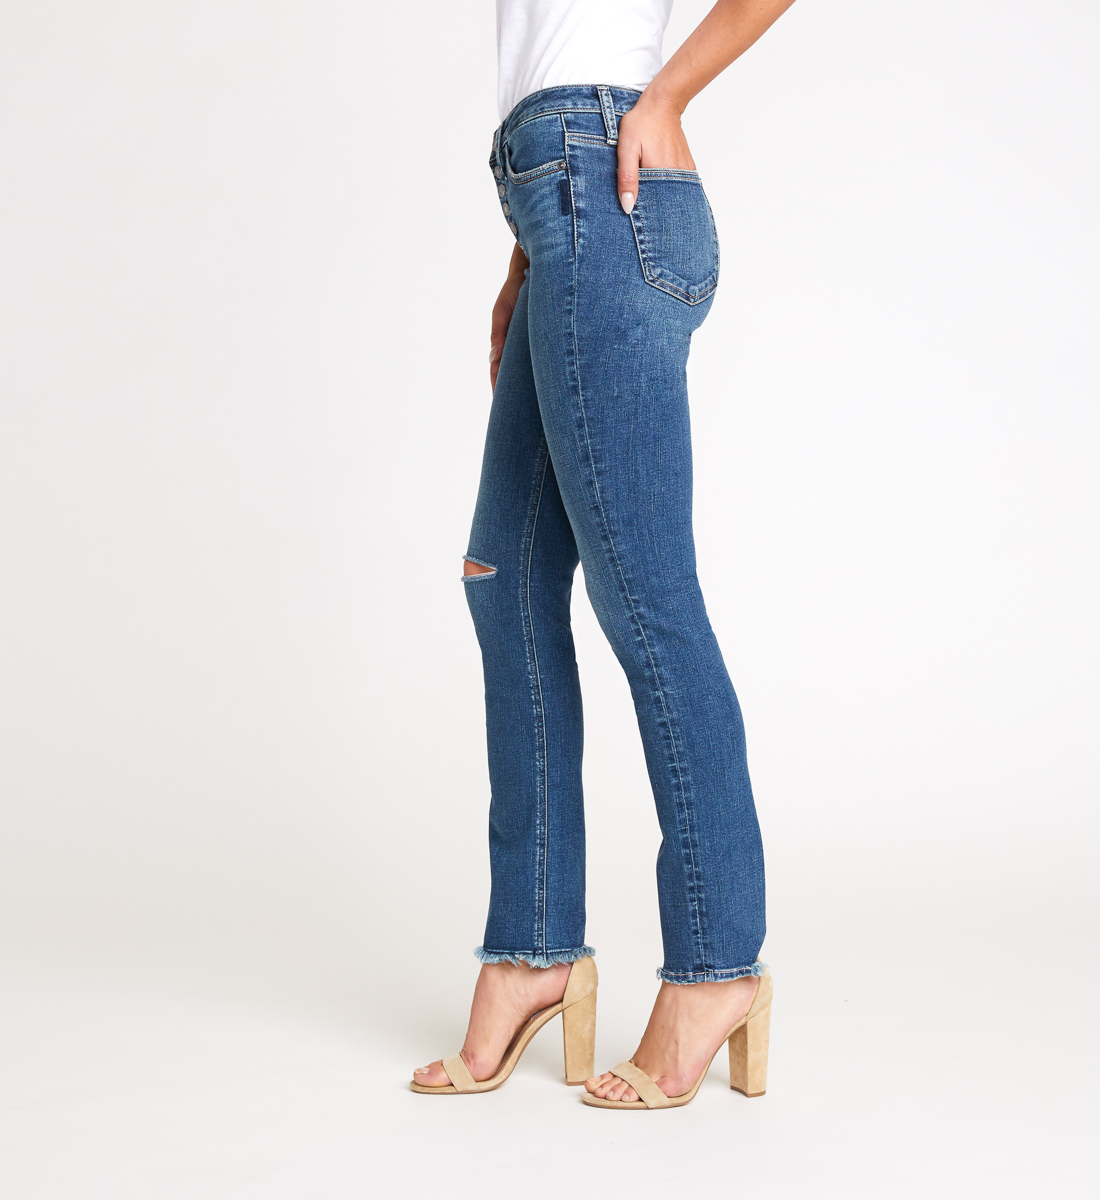 High Note High Rise Slim Leg Jeans Side